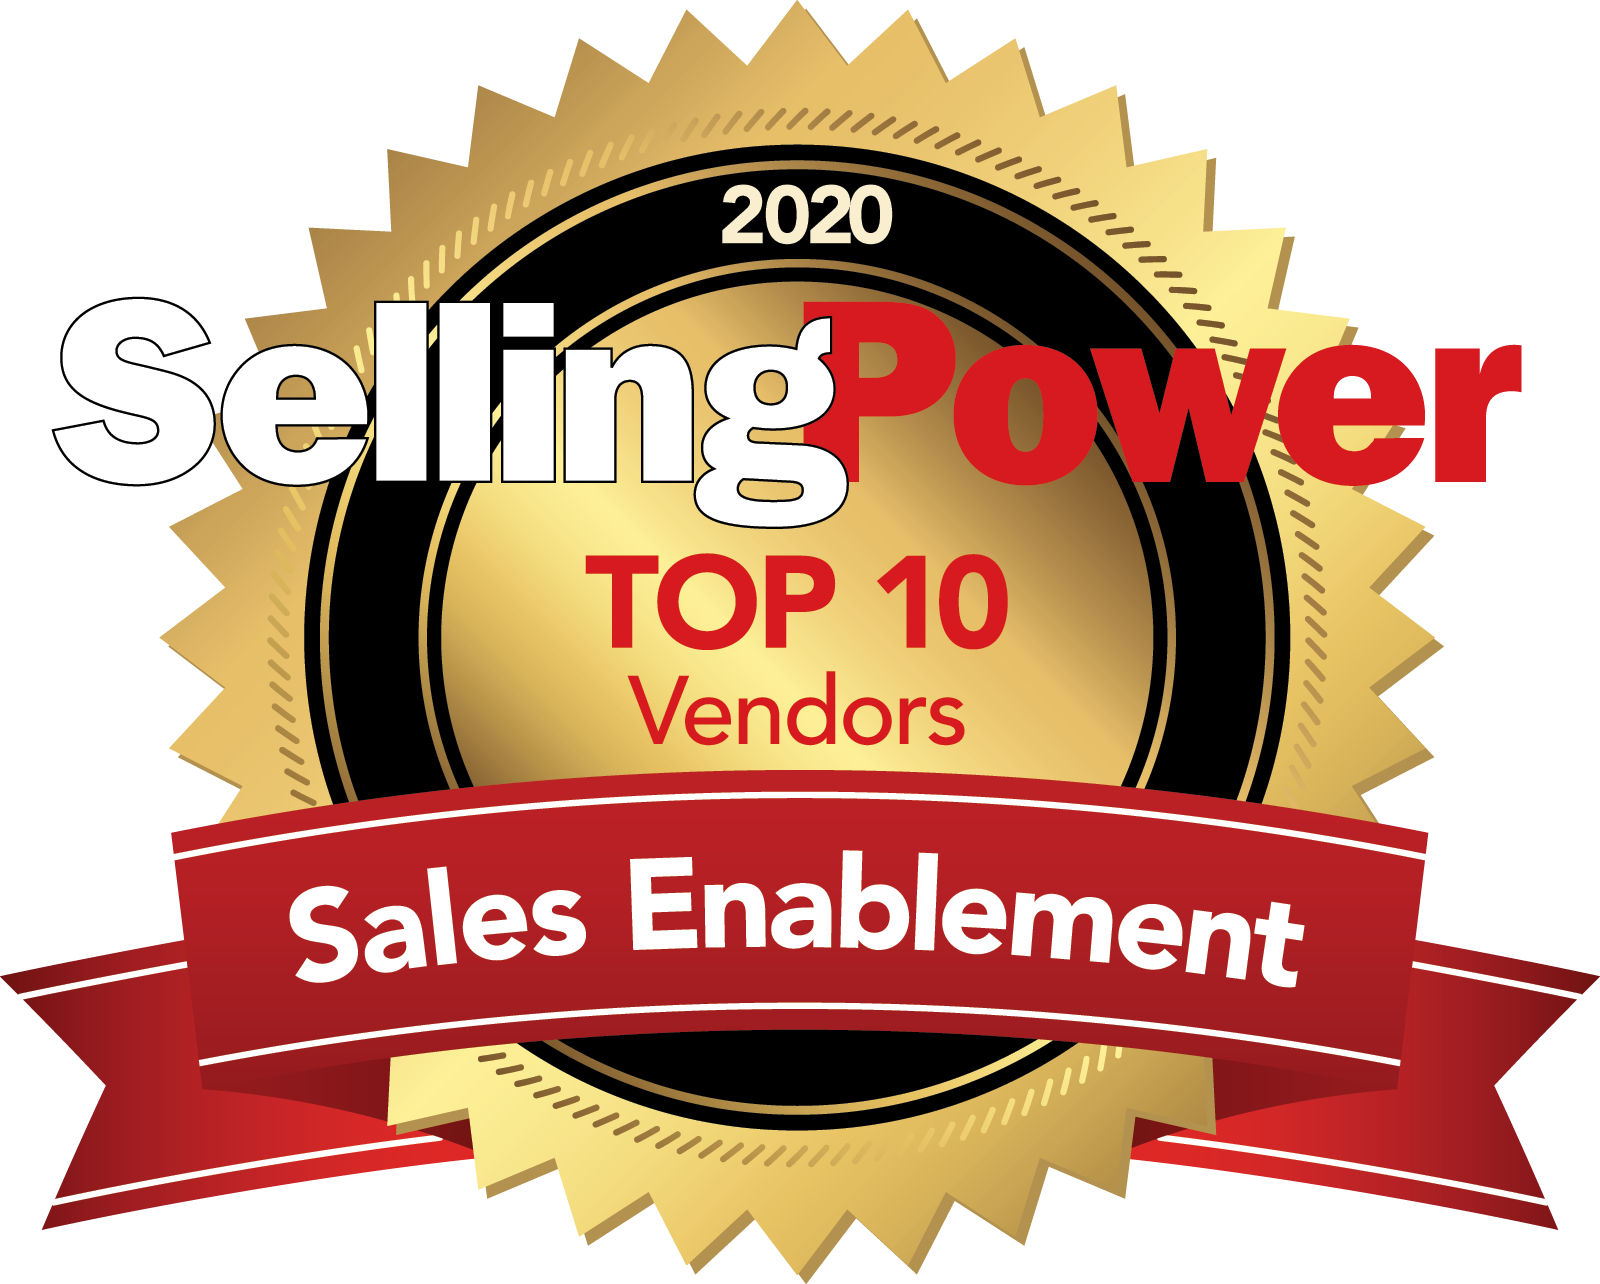 Inc 500 List 2020.Top 10 Sales Enablement Vendors In 2020 Selling Power